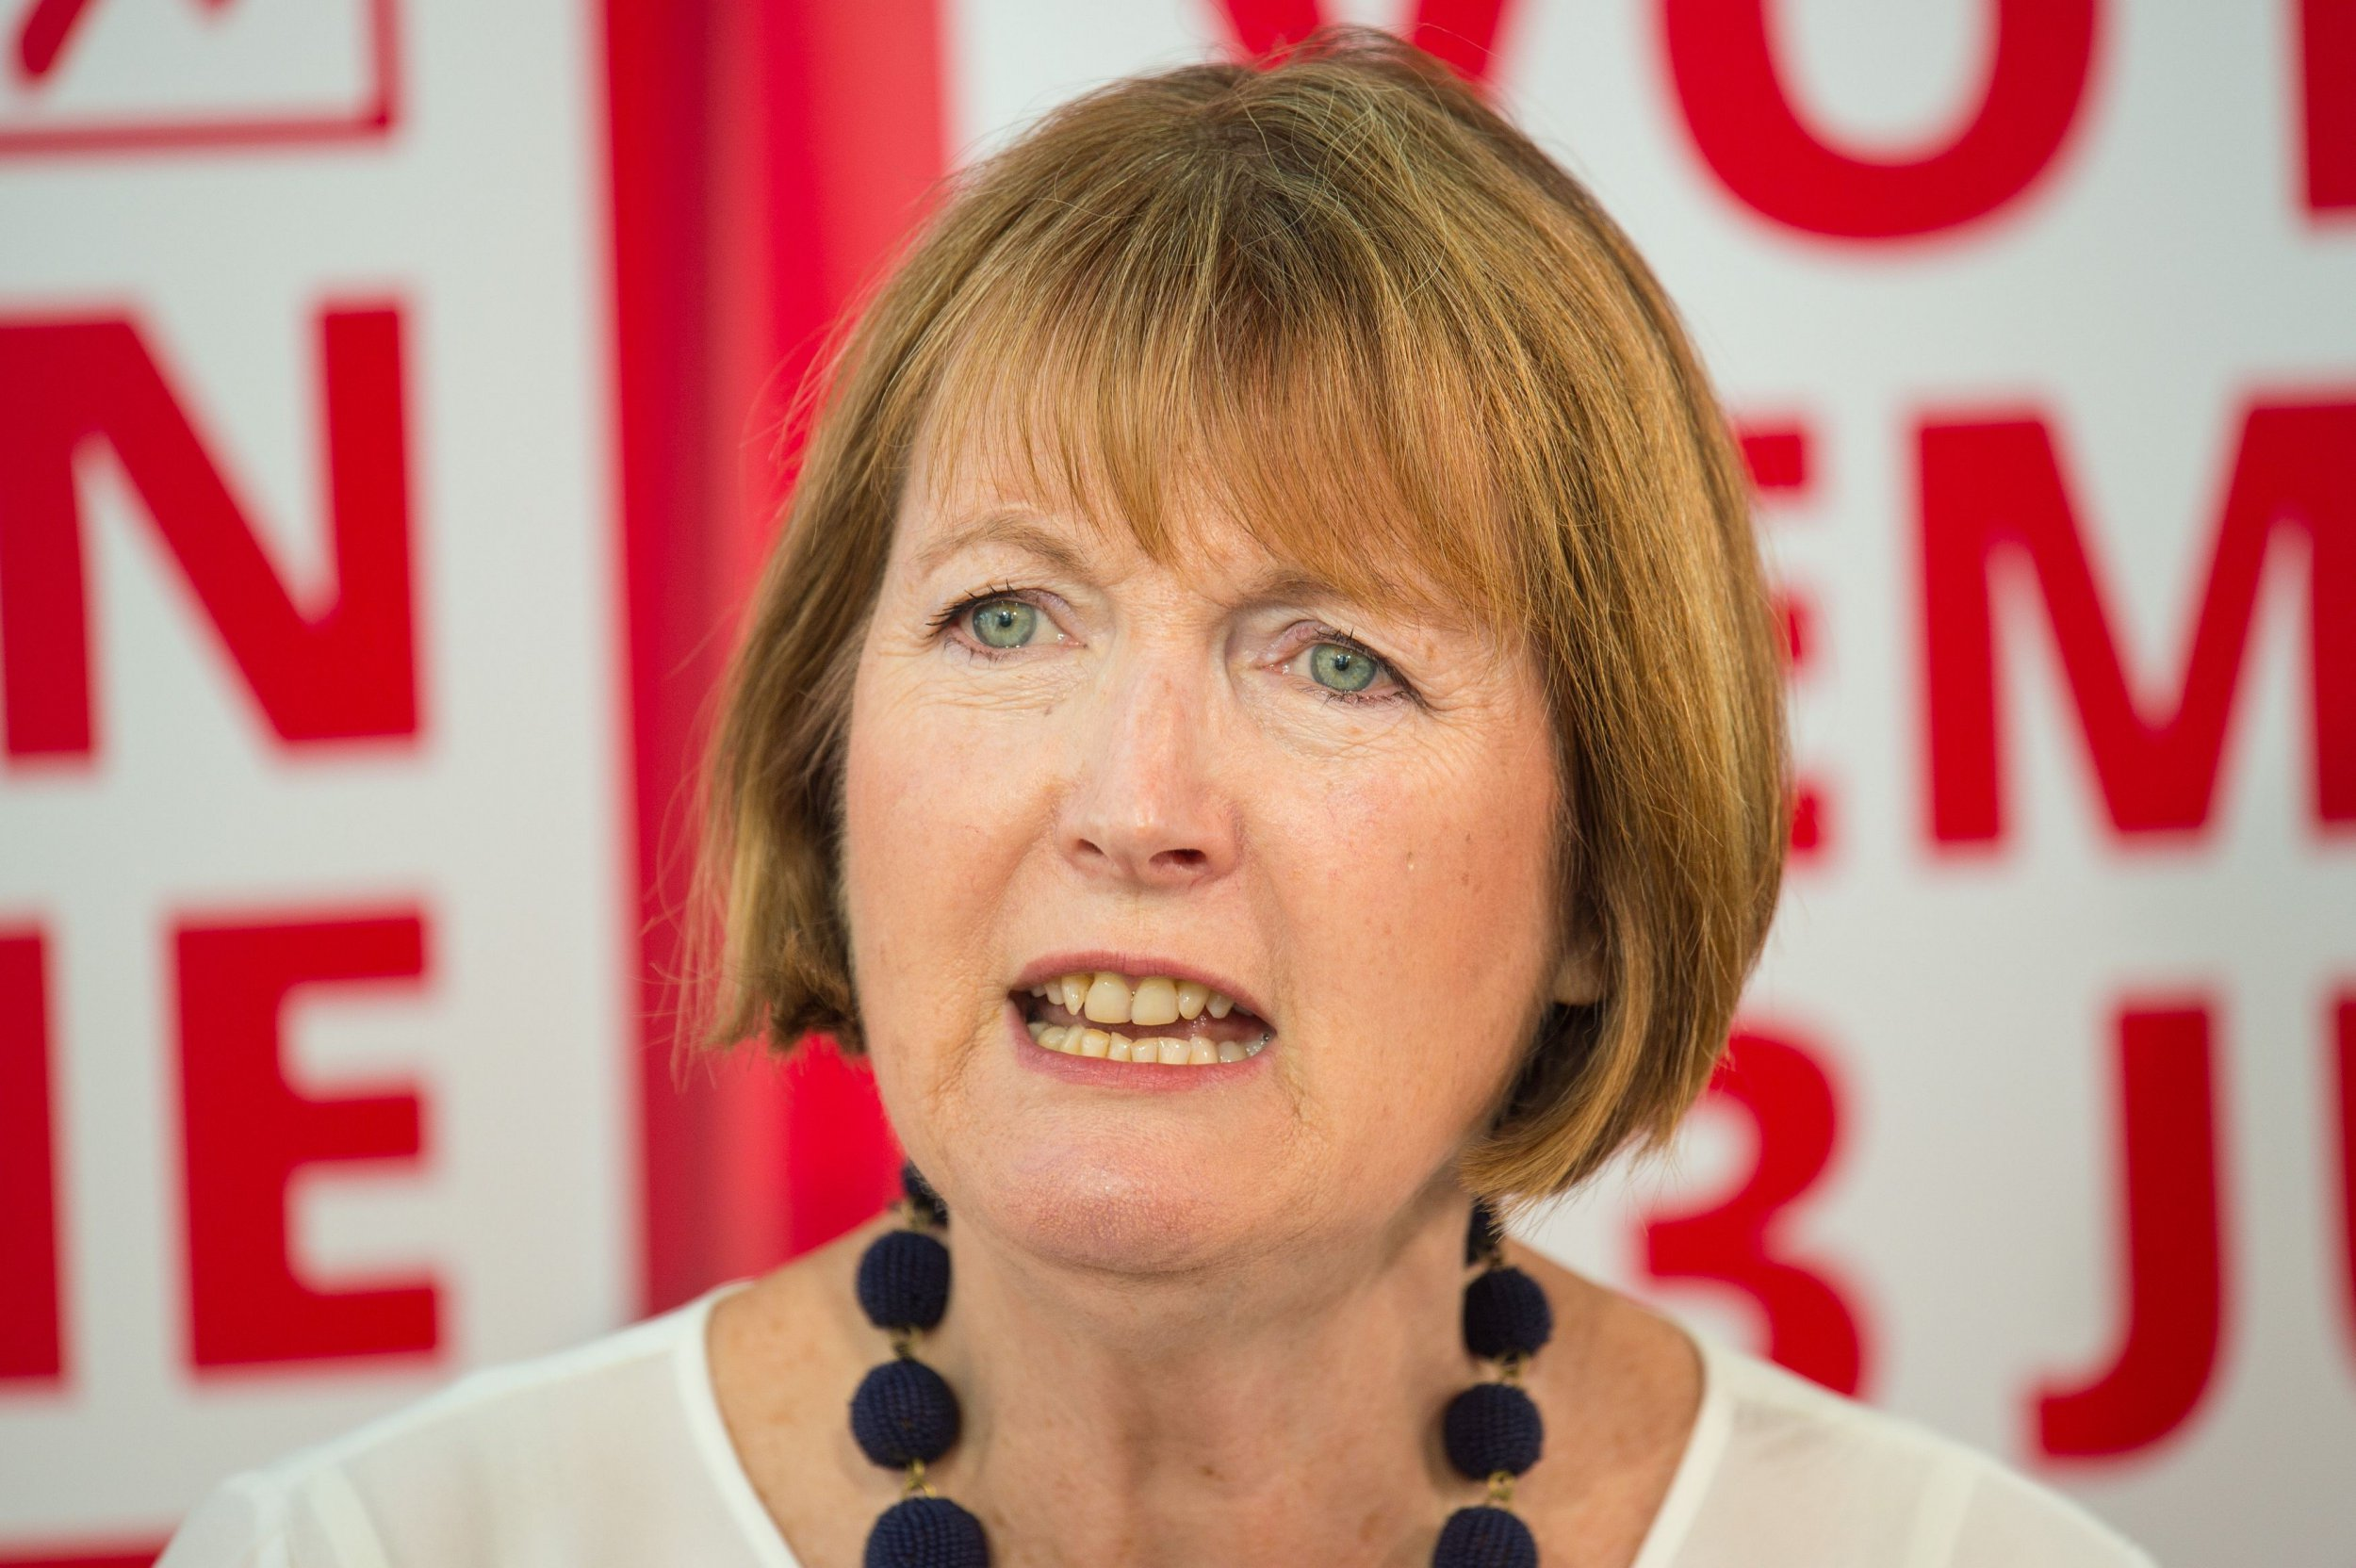 Embargoed to 0900 Thursday August 24 File photo dated 31/01/17 of Harriet Harman, who has said she would have beaten Ed Miliband in the 2010 Labour leadership election if she had chosen to stand for the role.